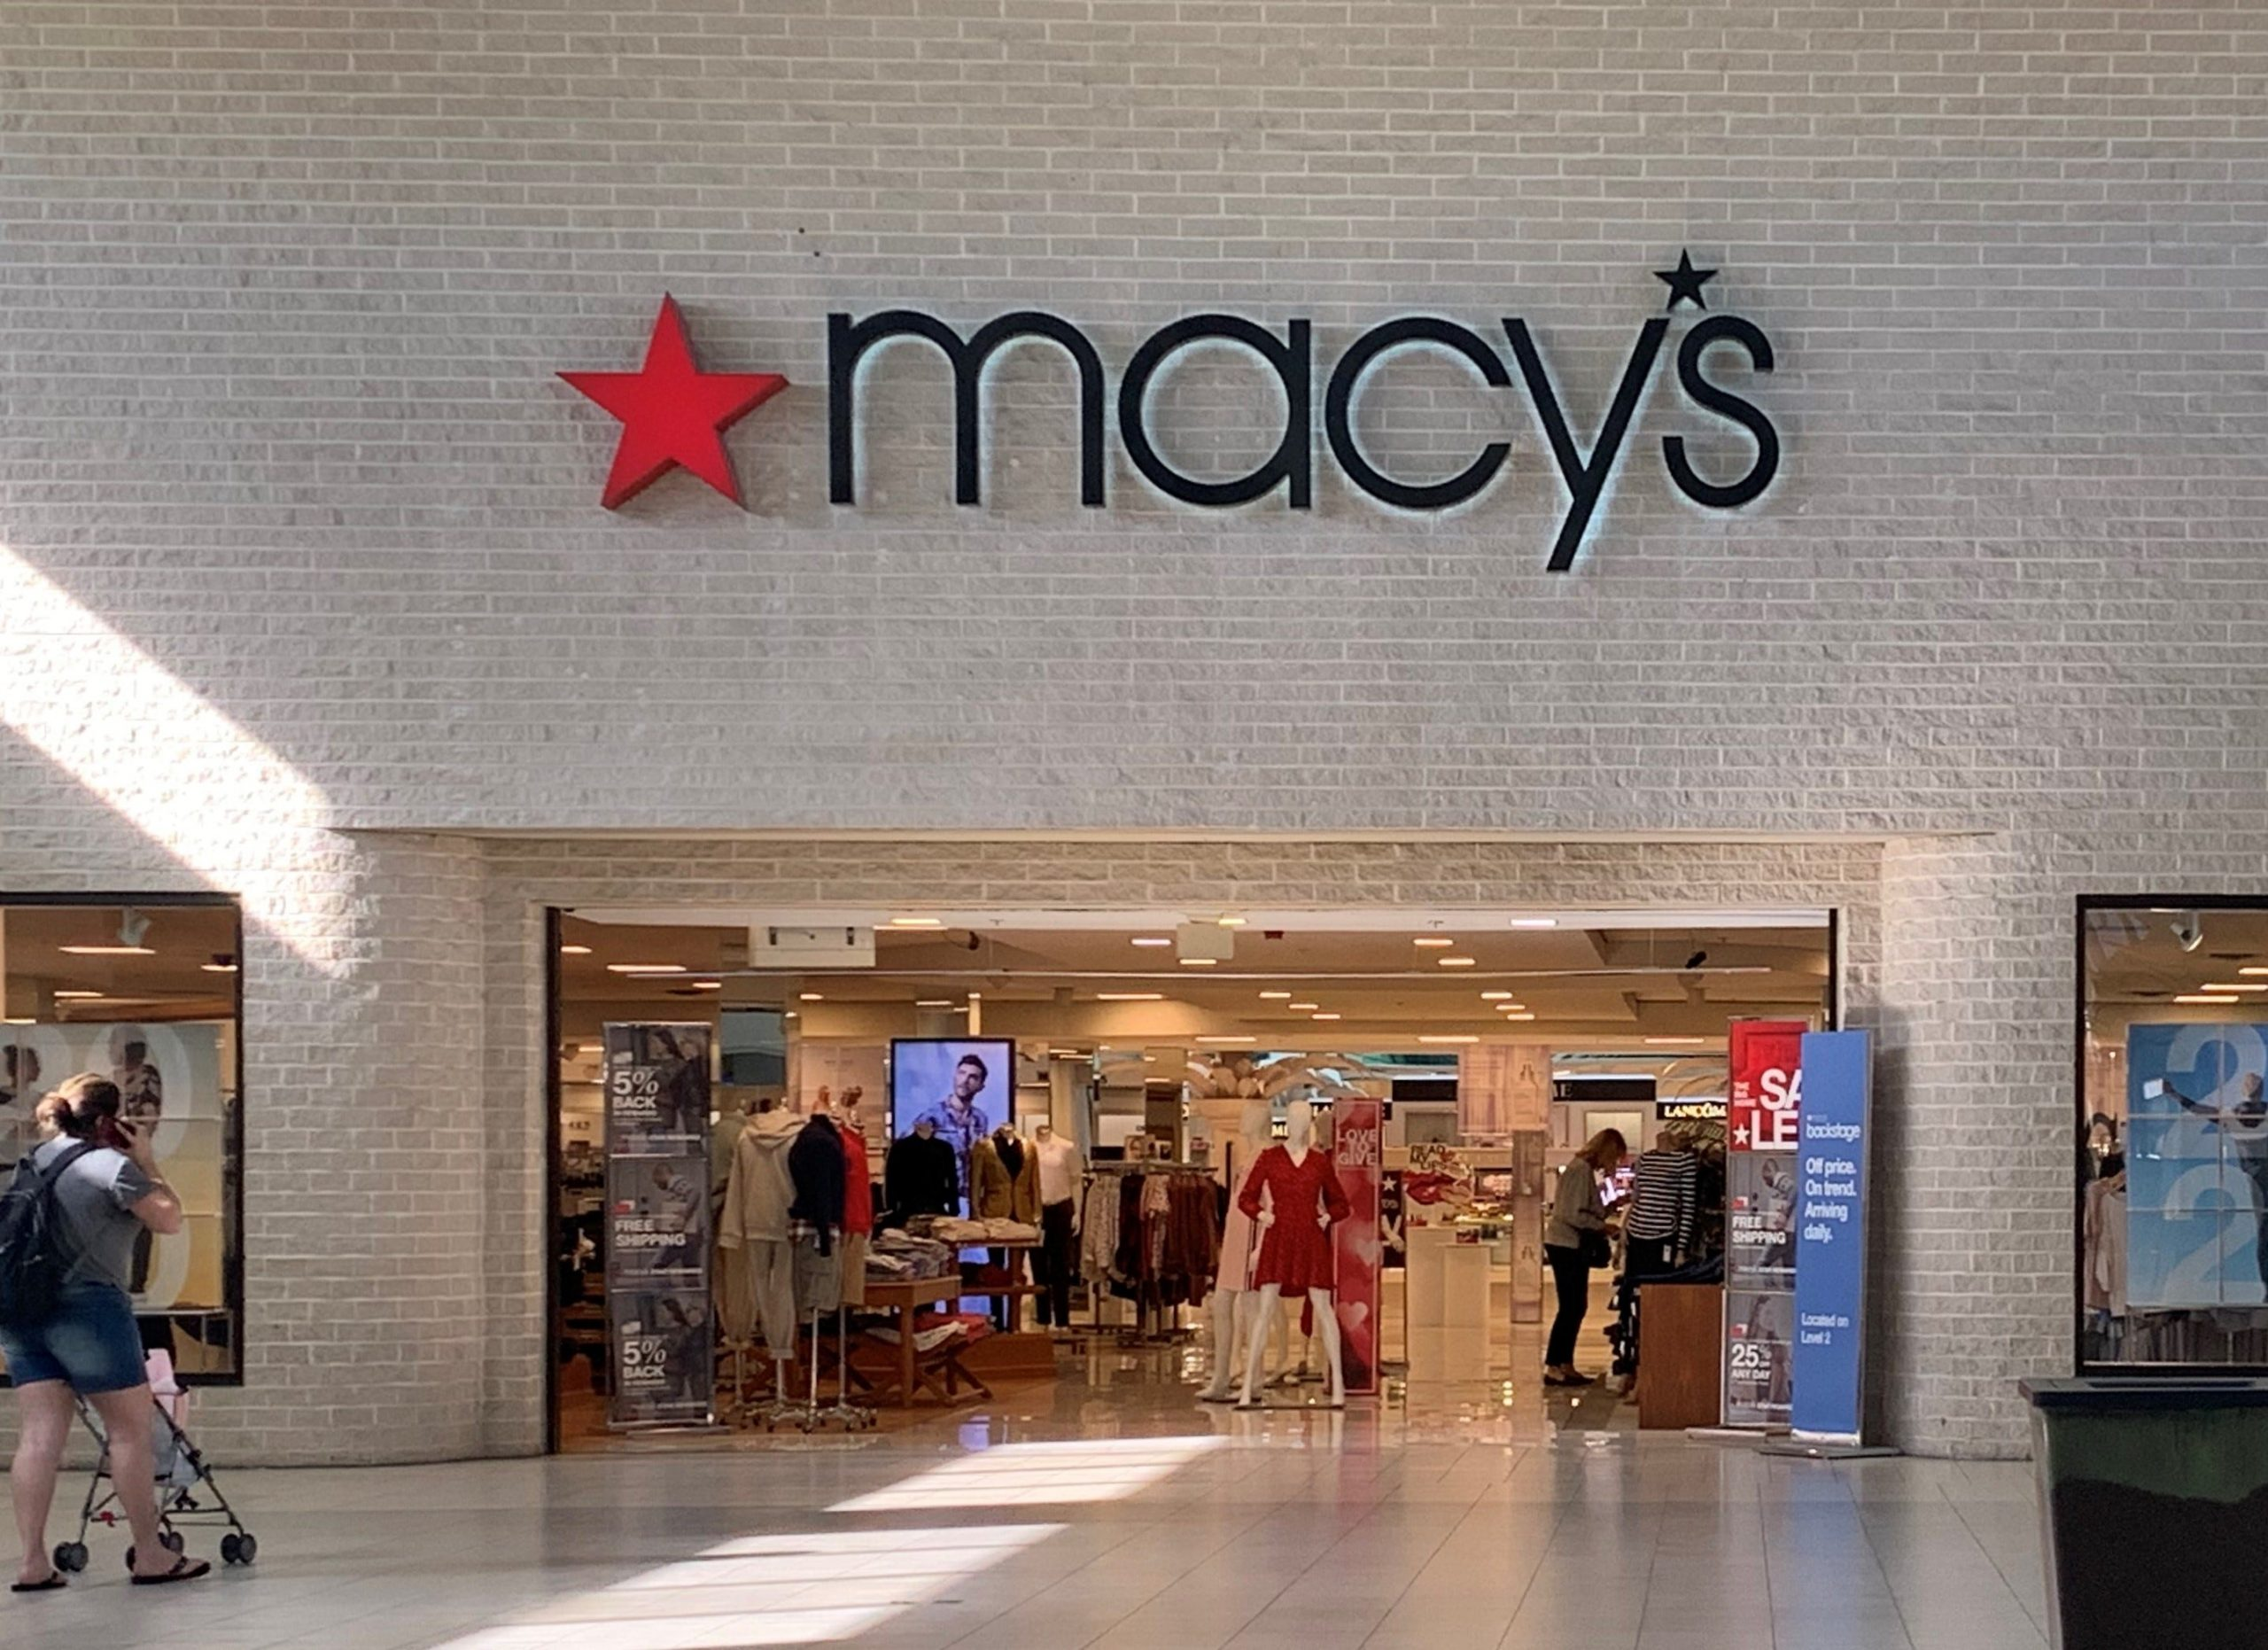 Macy's to close more stores as part of department store chain's plan to shutter 125 locations in 3 years